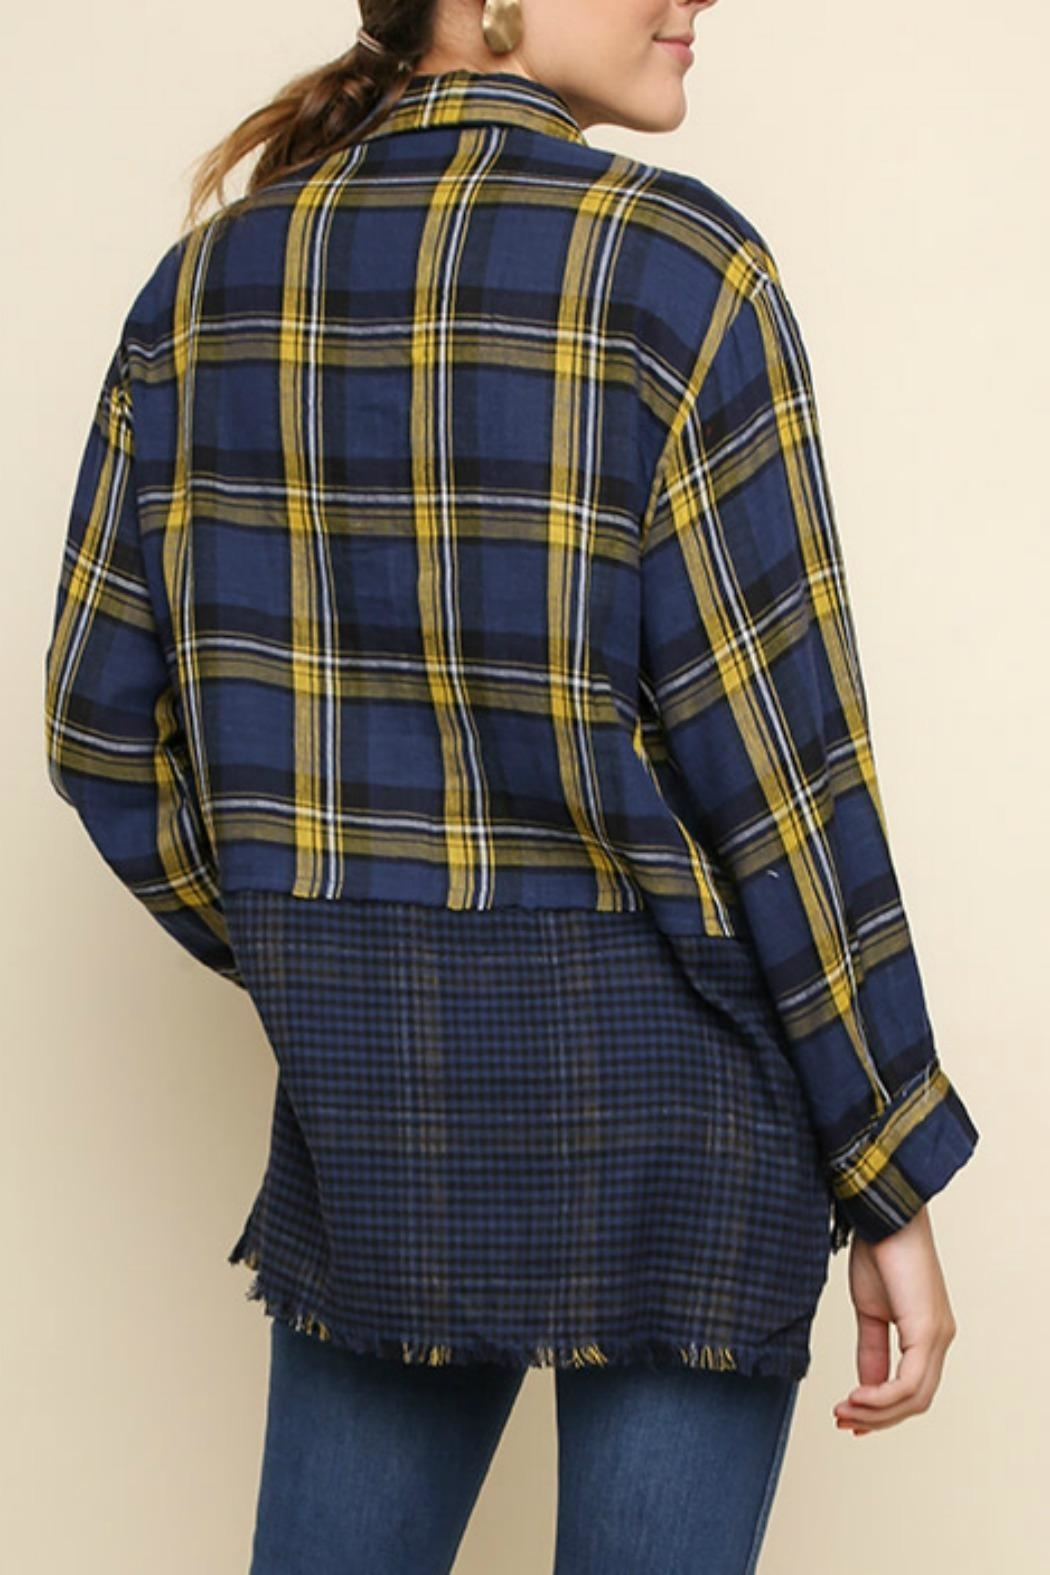 Umgee USA Plaid Checkered Button-Up - Front Full Image